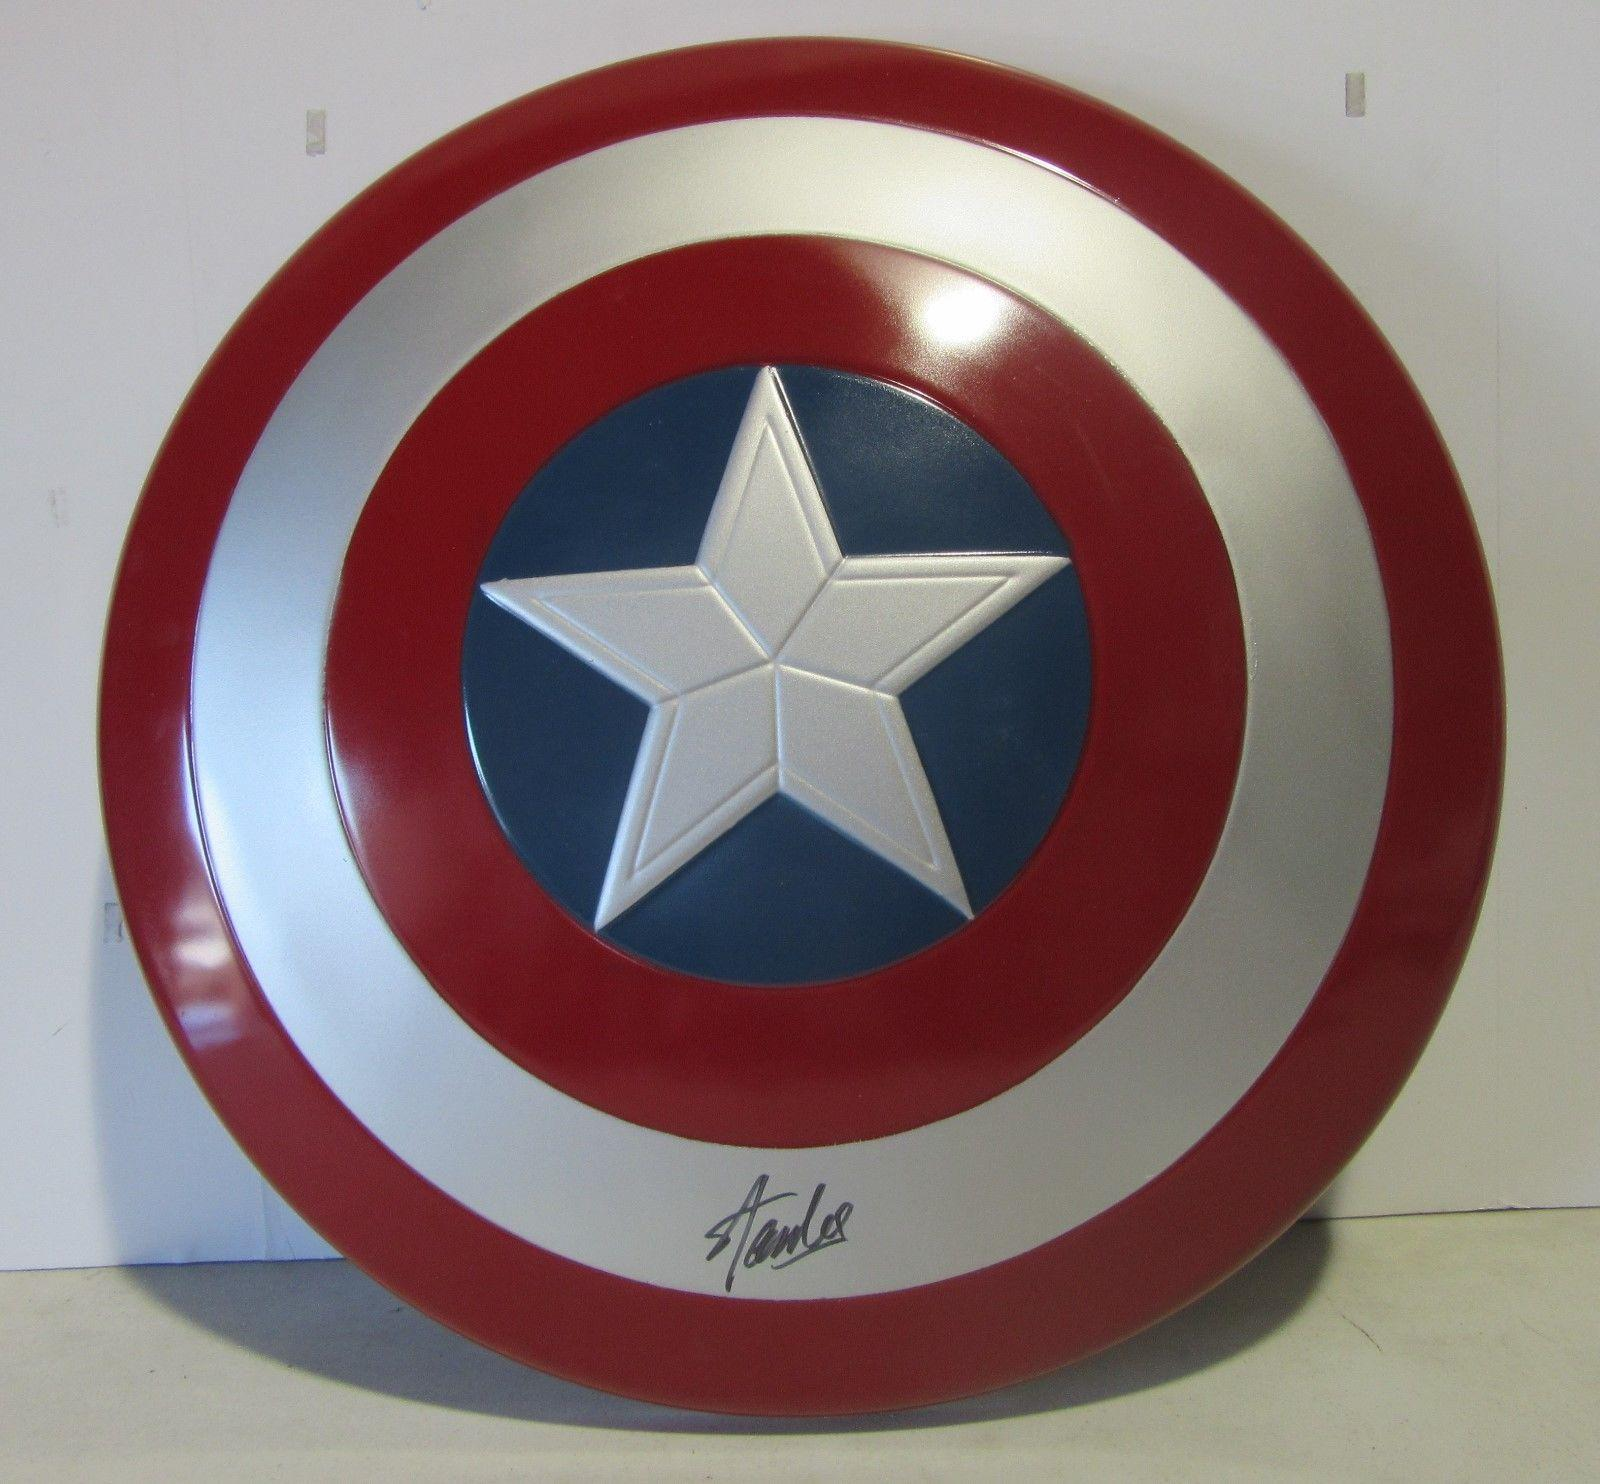 Stan Lee Signed Autographed Captain America Shield Marvel Comics Psa/dna Ac32434